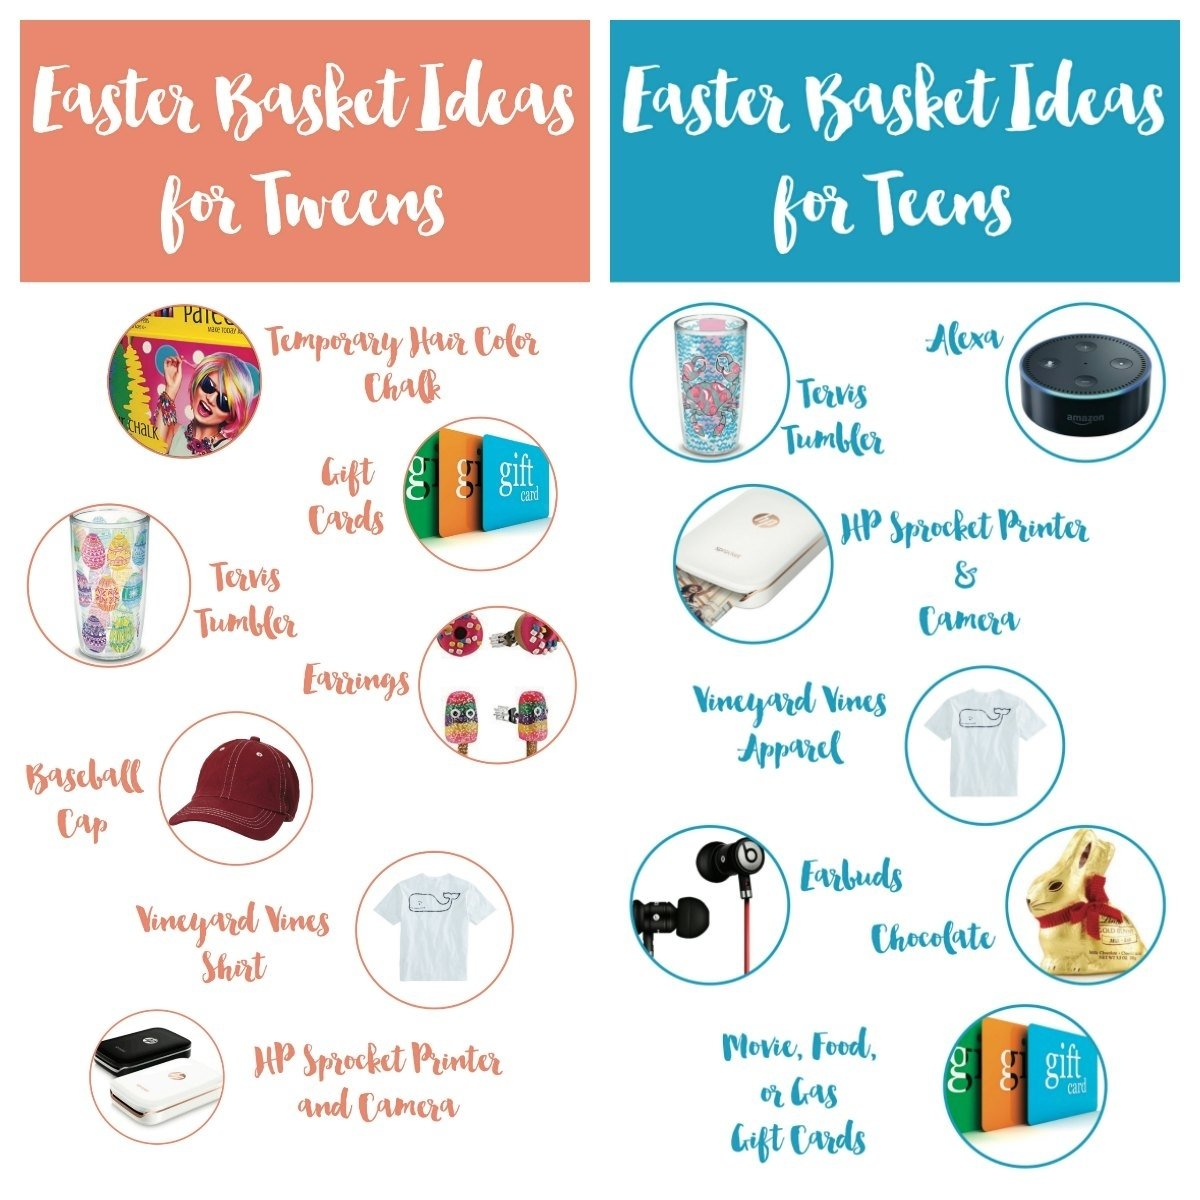 10 Most Recommended Easter Basket Ideas For Tweens easter baskets for tweens and teens everyday party magazine 2020